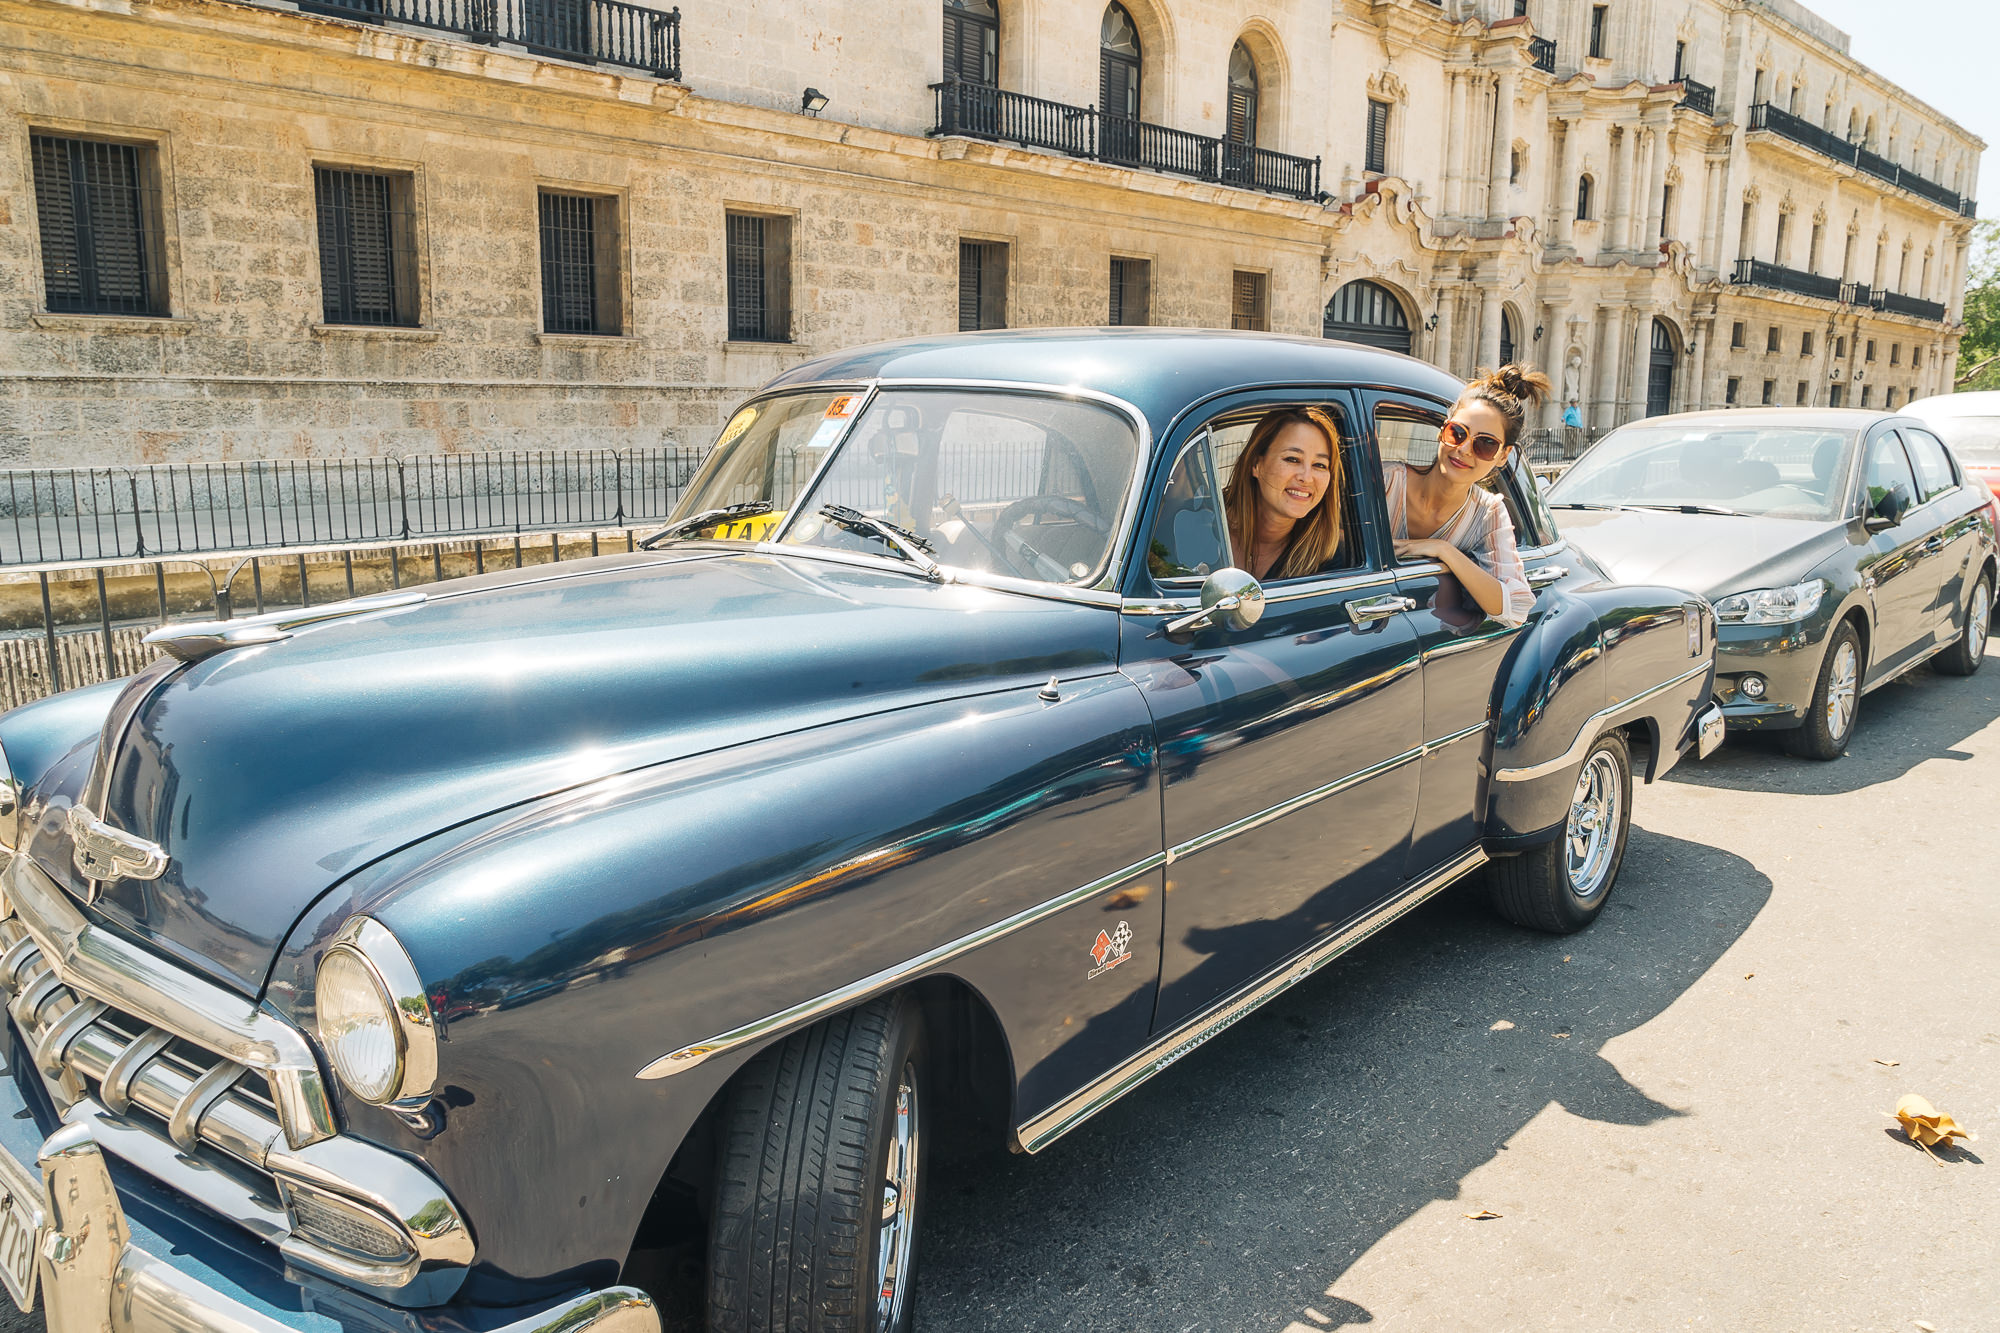 The car we rode in during our Havana, Cuba tour